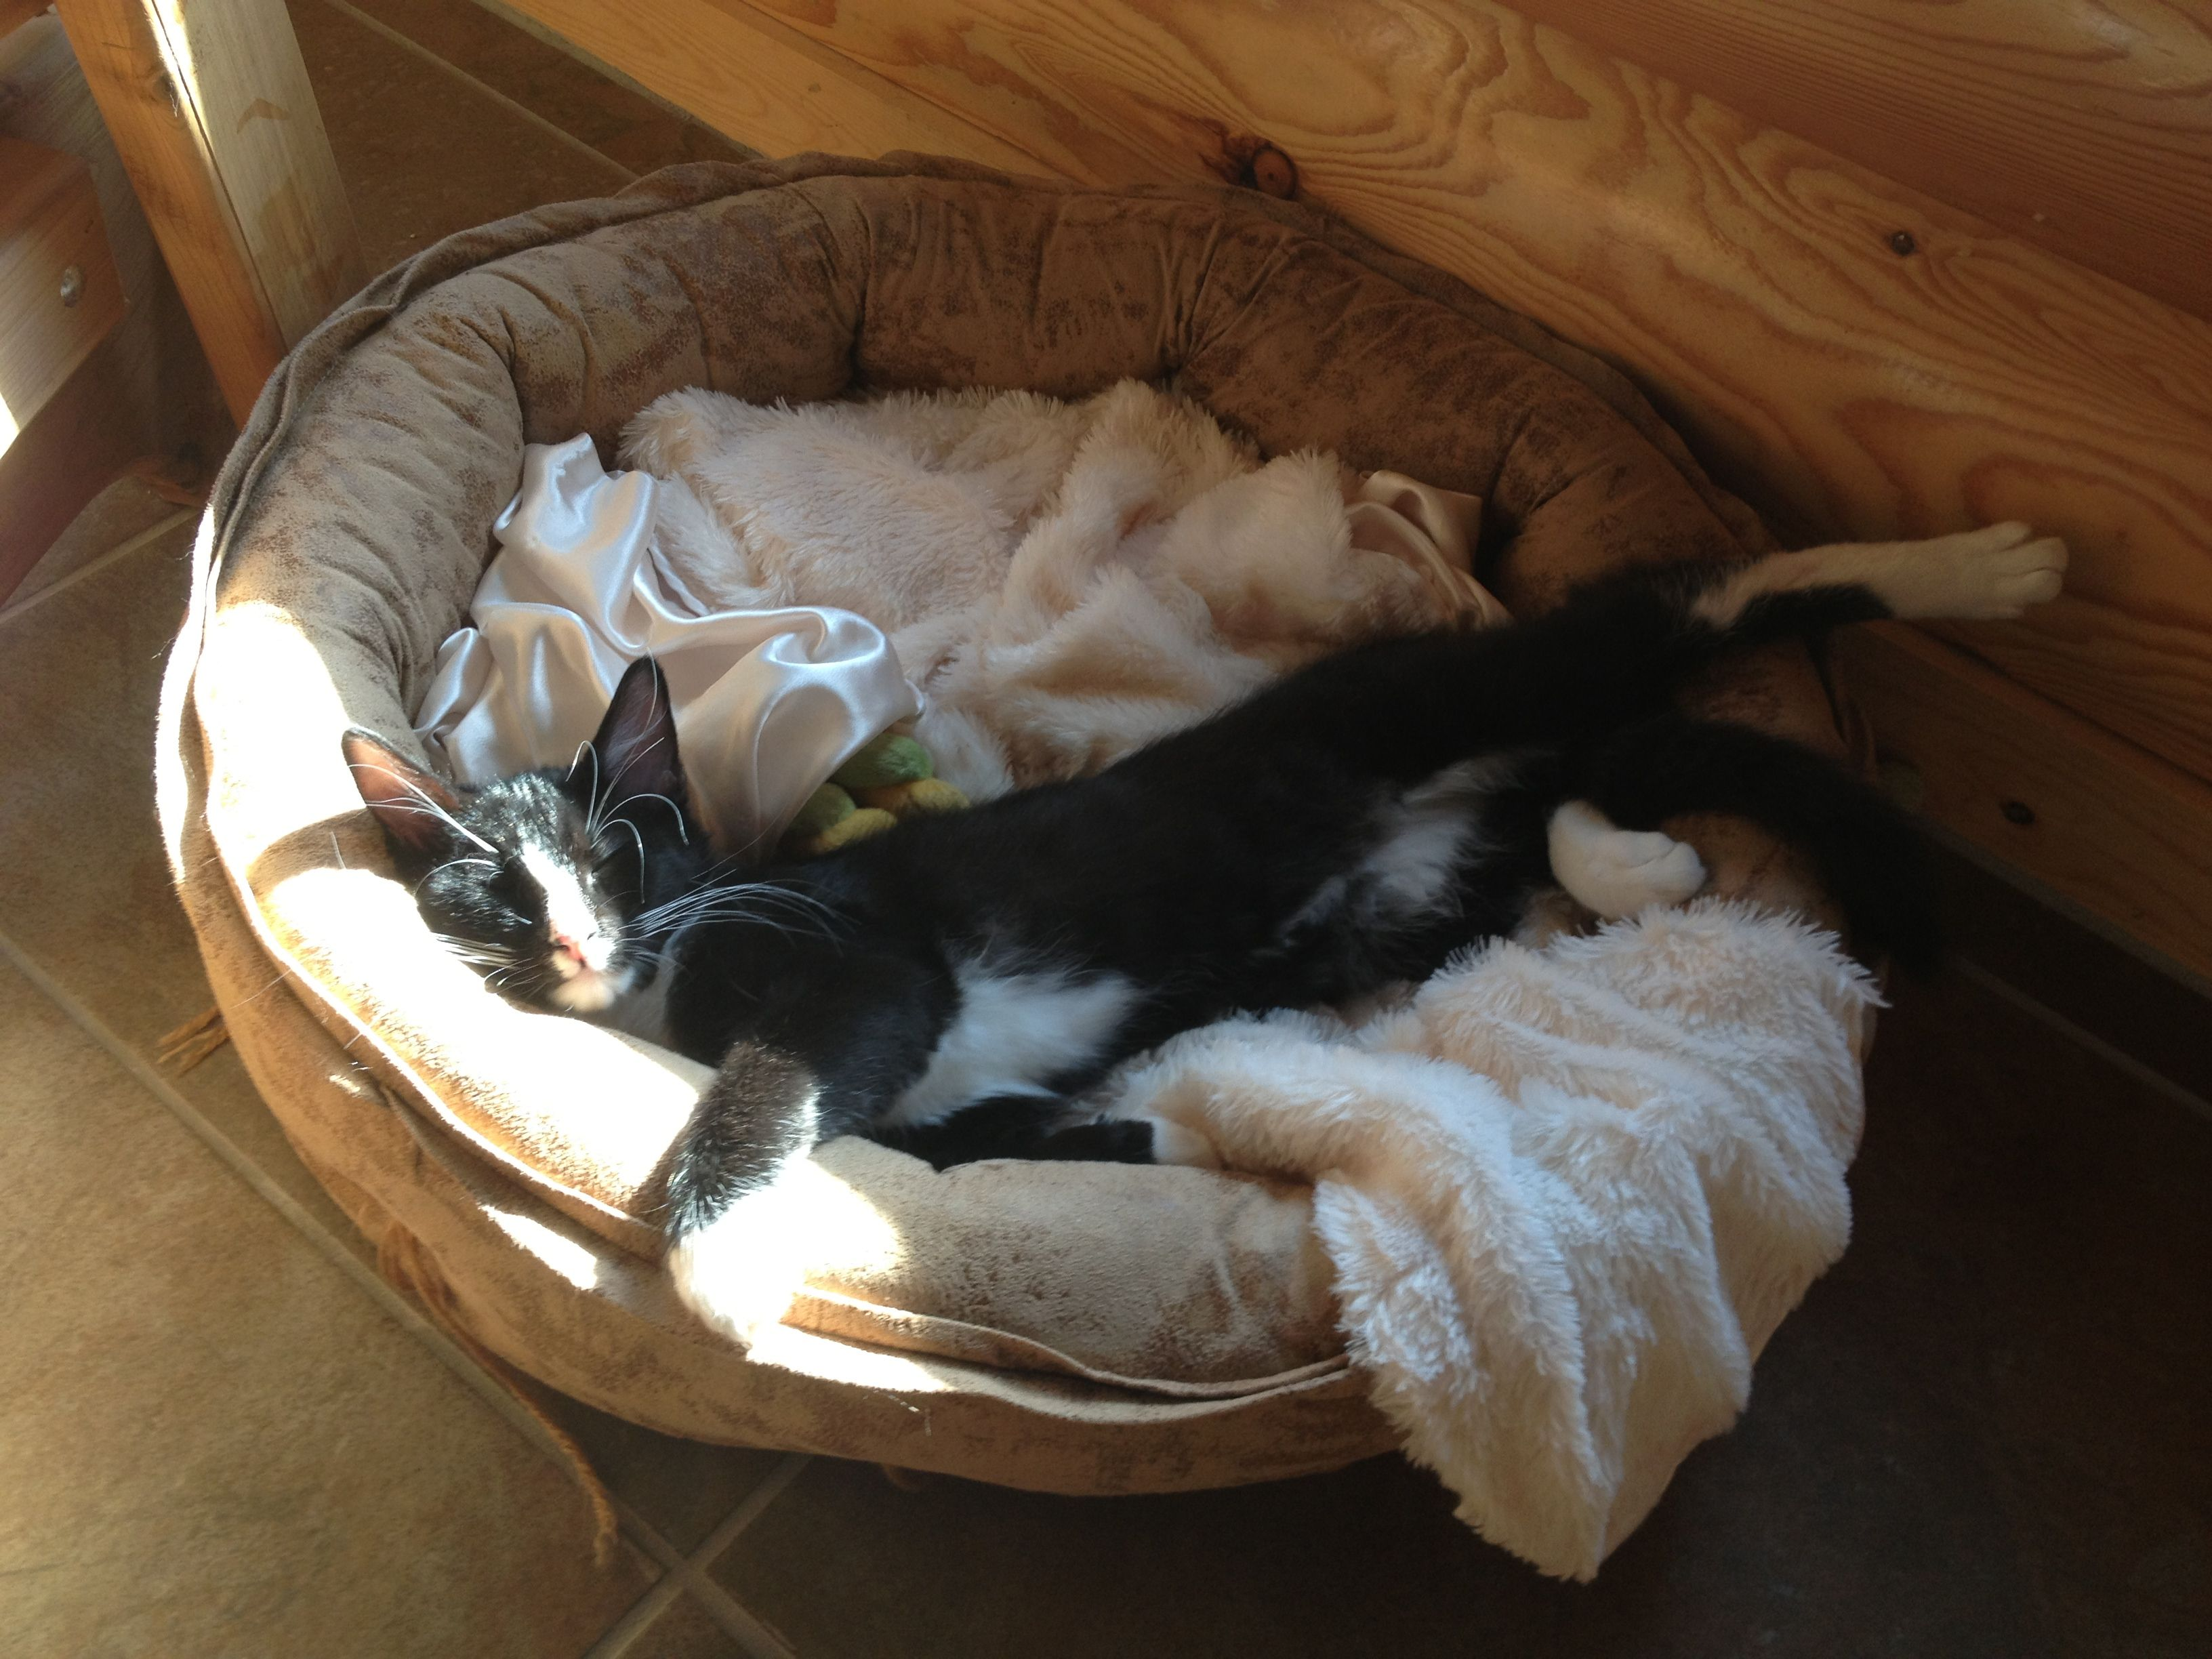 Danny needs a forever home. 3 month old kitten. Companion Pet Rescue, kc mo